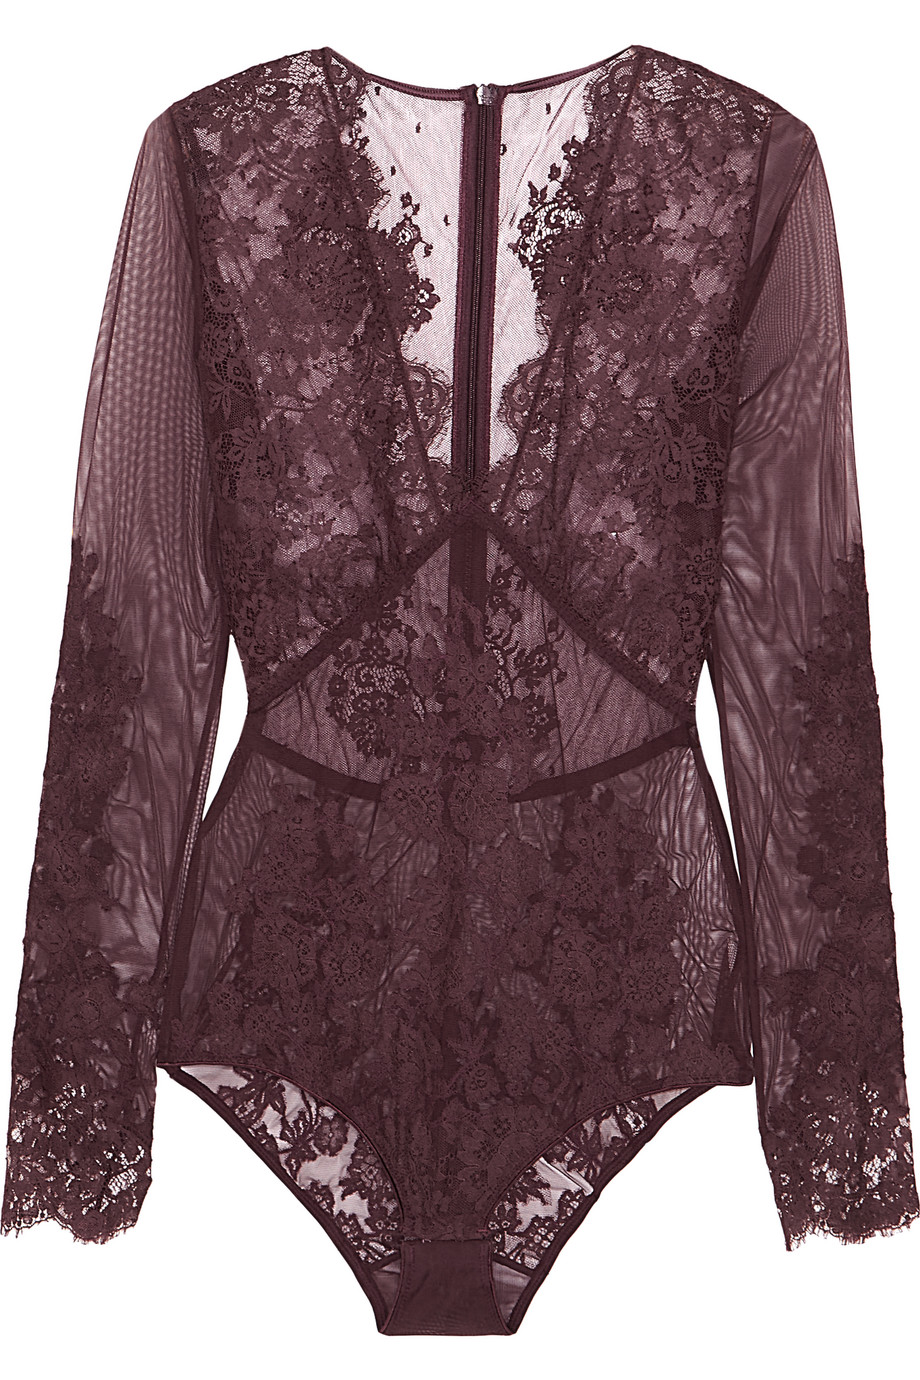 I.D. Sarrieri Chantilly Lace and Stretch-Tulle Bodysuit, Burgundy, Women's, Size: 1